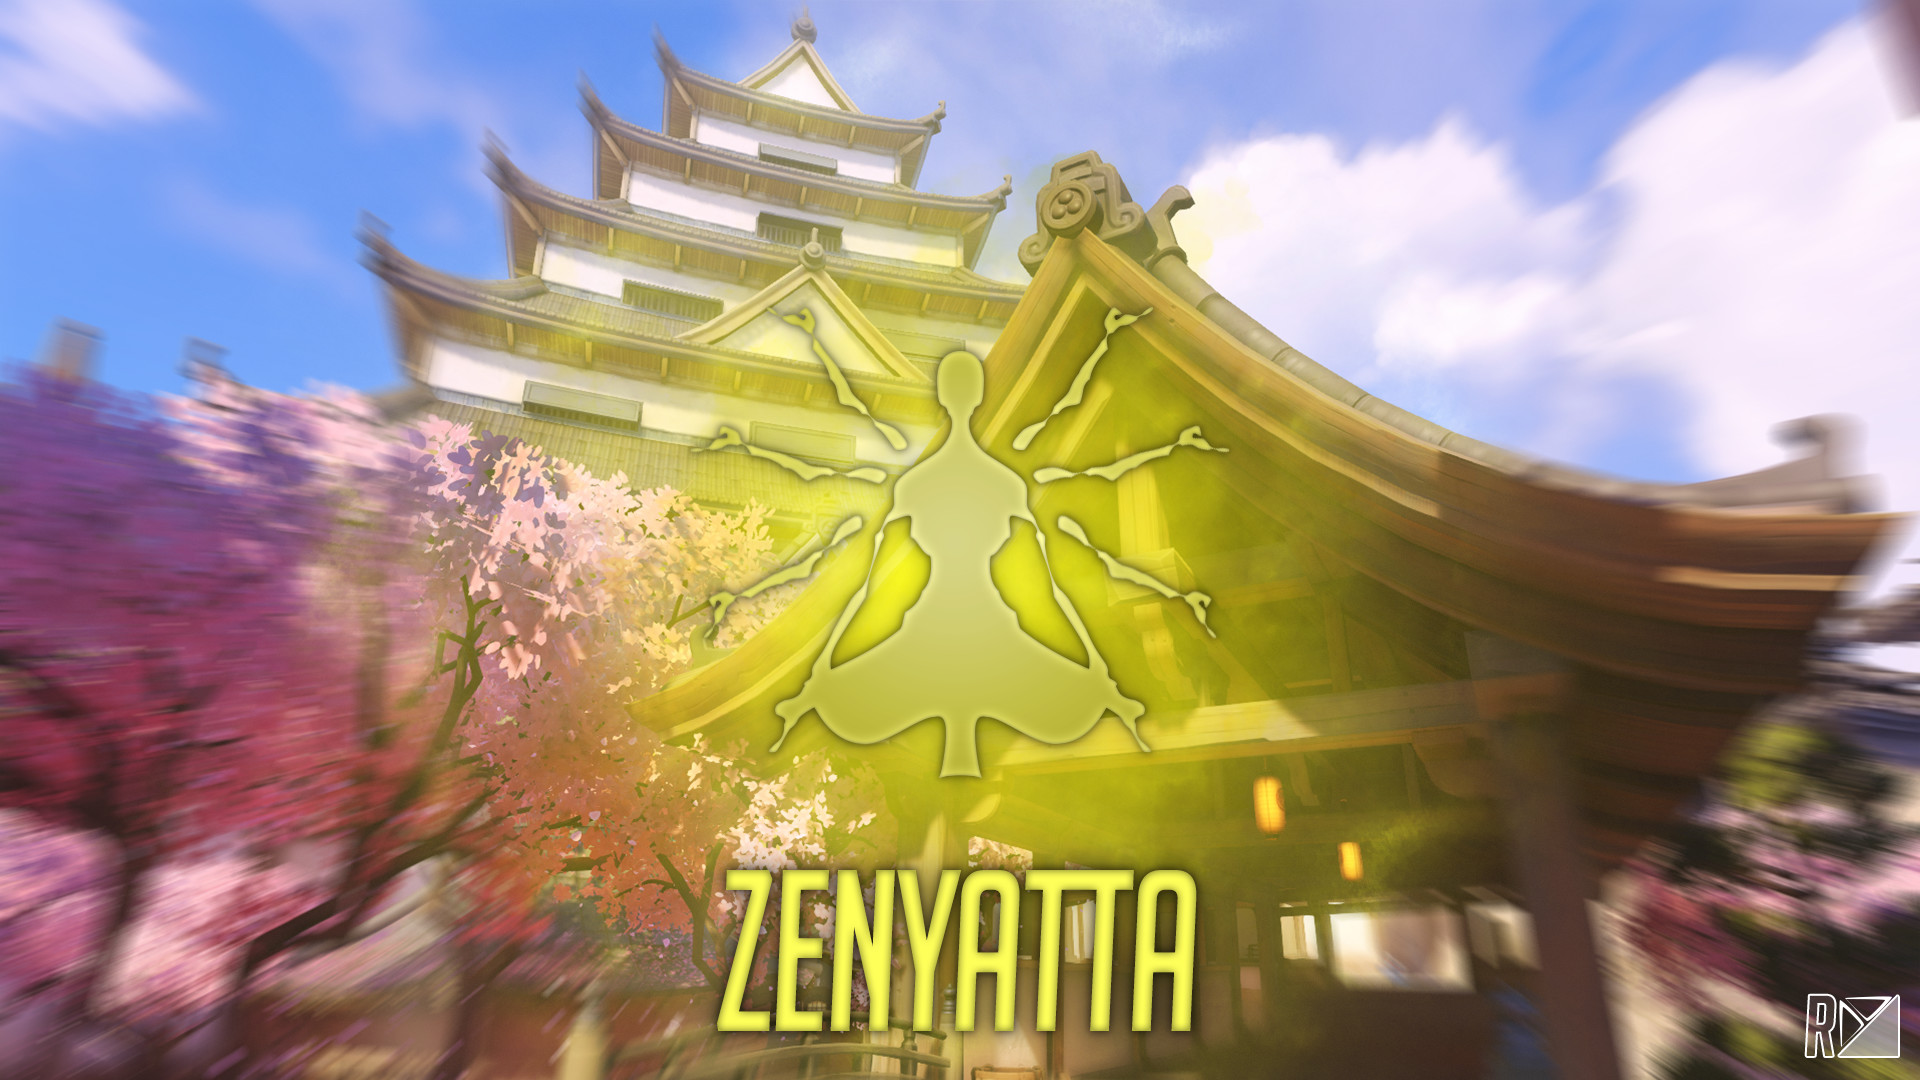 1920x1080 Zenyatta Ultimate Wallpaper Text by ruanes97 Zenyatta Ultimate Wallpaper  Text by ruanes97